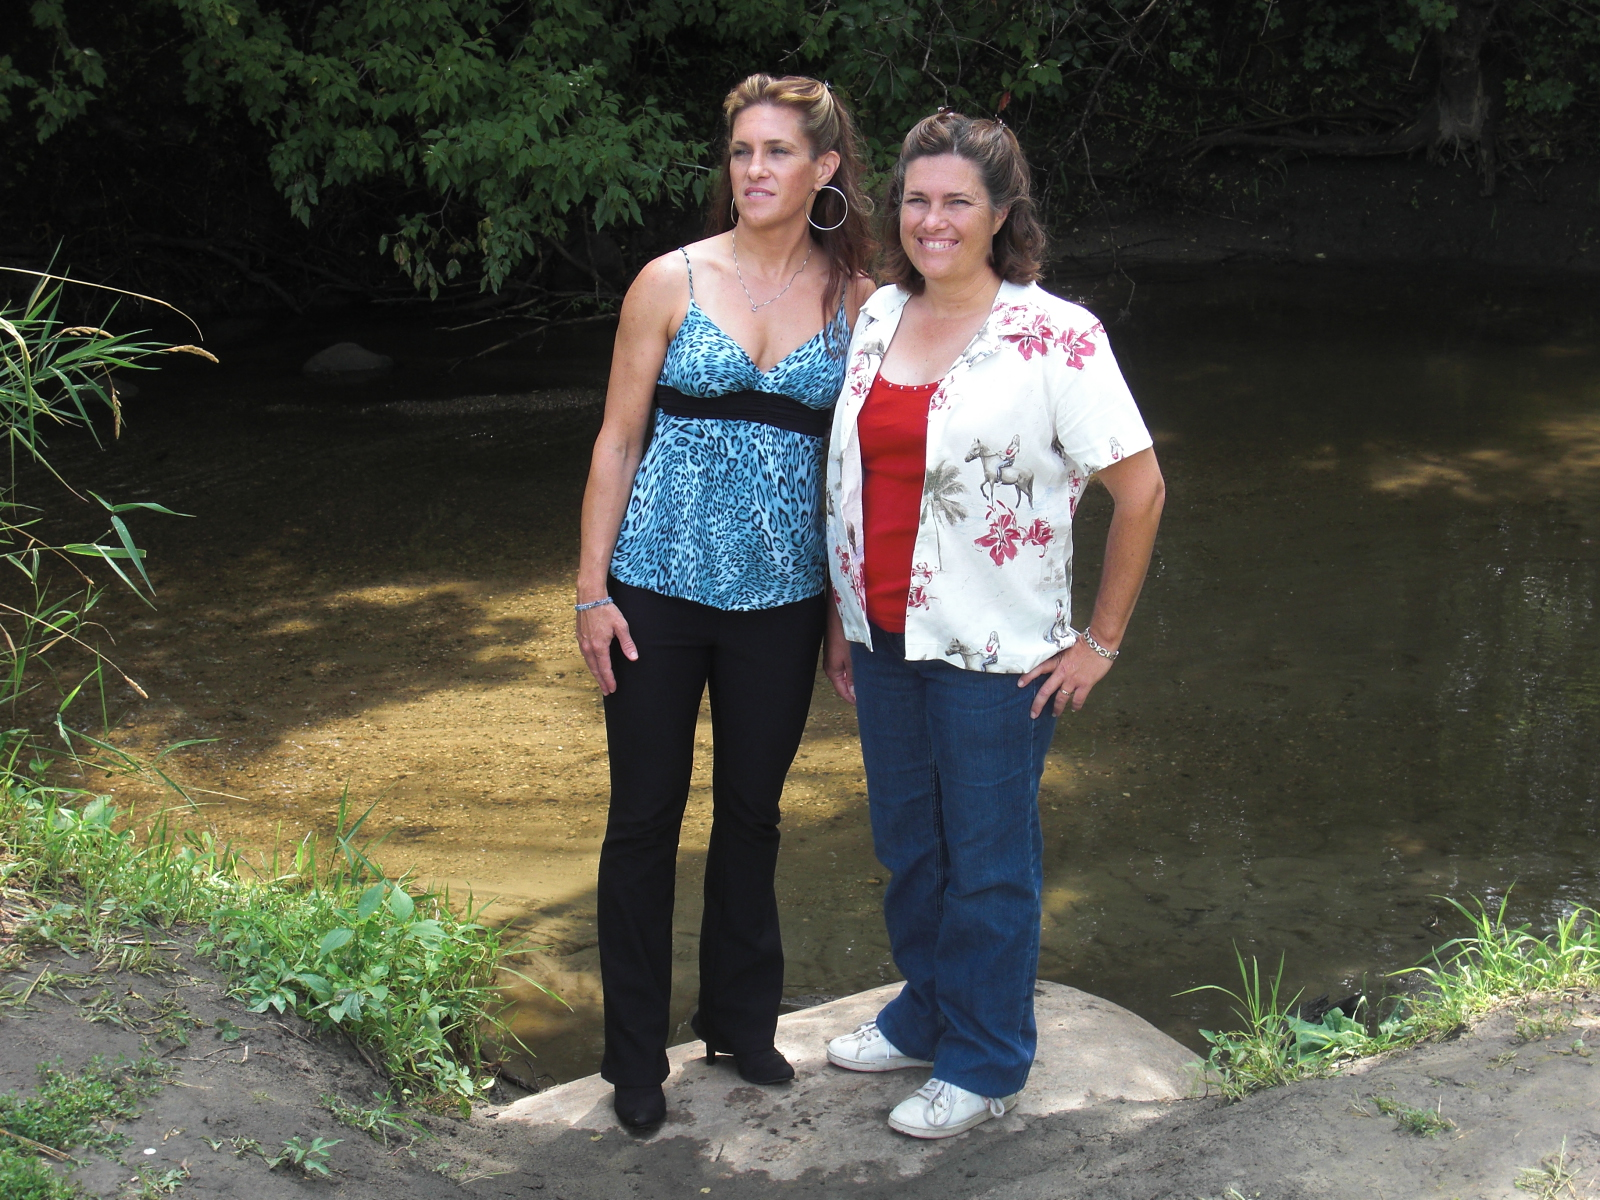 Both Lindsay Greenbush and Sidney Greenbush standing near a pond. After the show ended, they appeared in numerous commercials. In 1983, Sidney appeared in the film, Hambone and Hillie, and Lindsay had a guest appearance in one of the episodes of 'Matt Houston.' After that, they took leave from acting and focused on schooling. They graduated from Santa Monica High School in 1988.